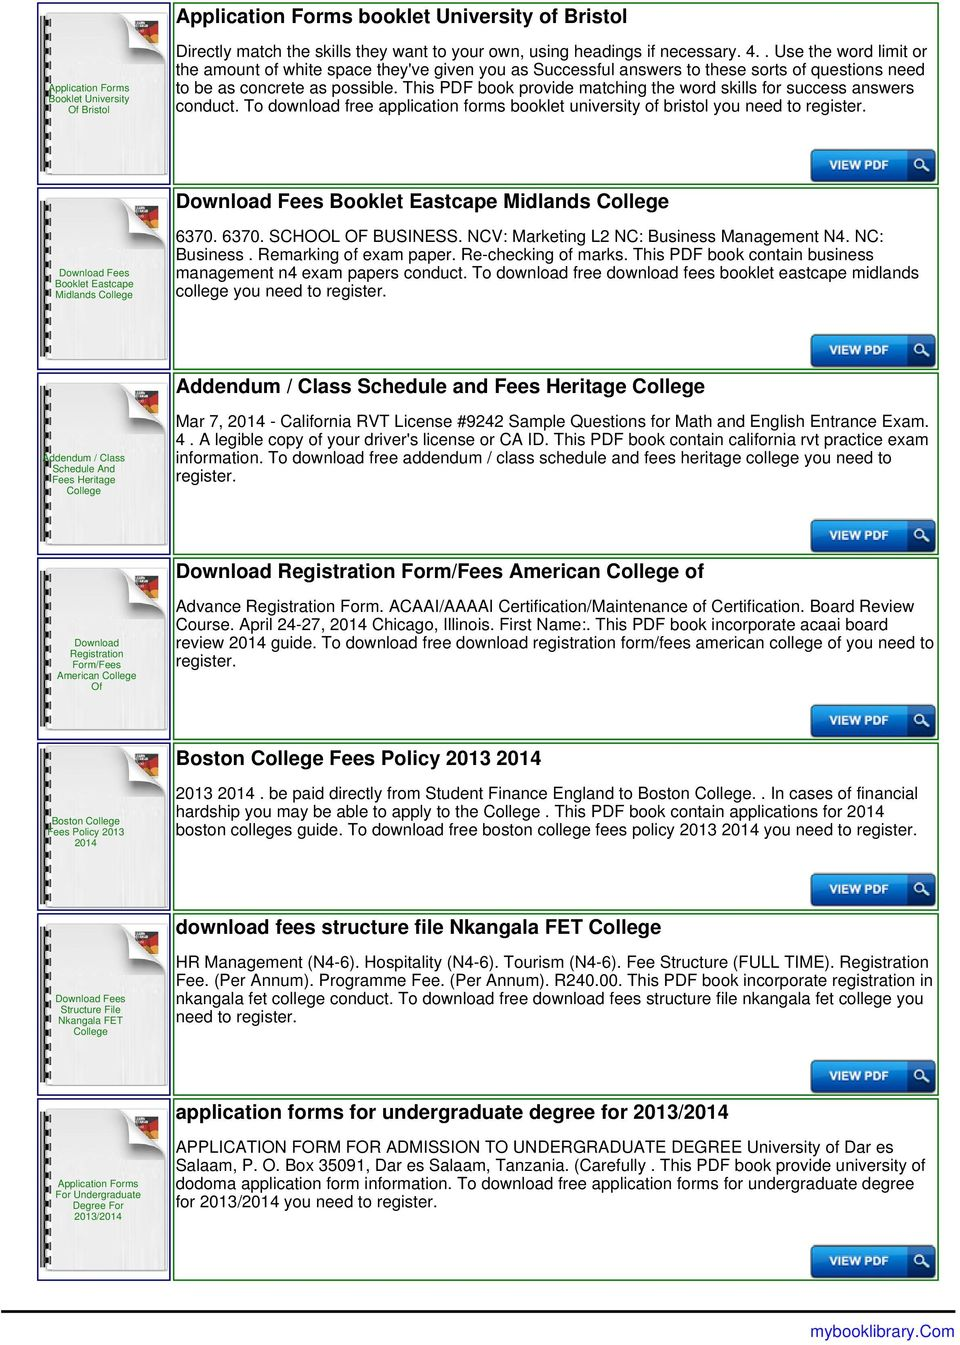 evelyn hone college application forms and fees pdf